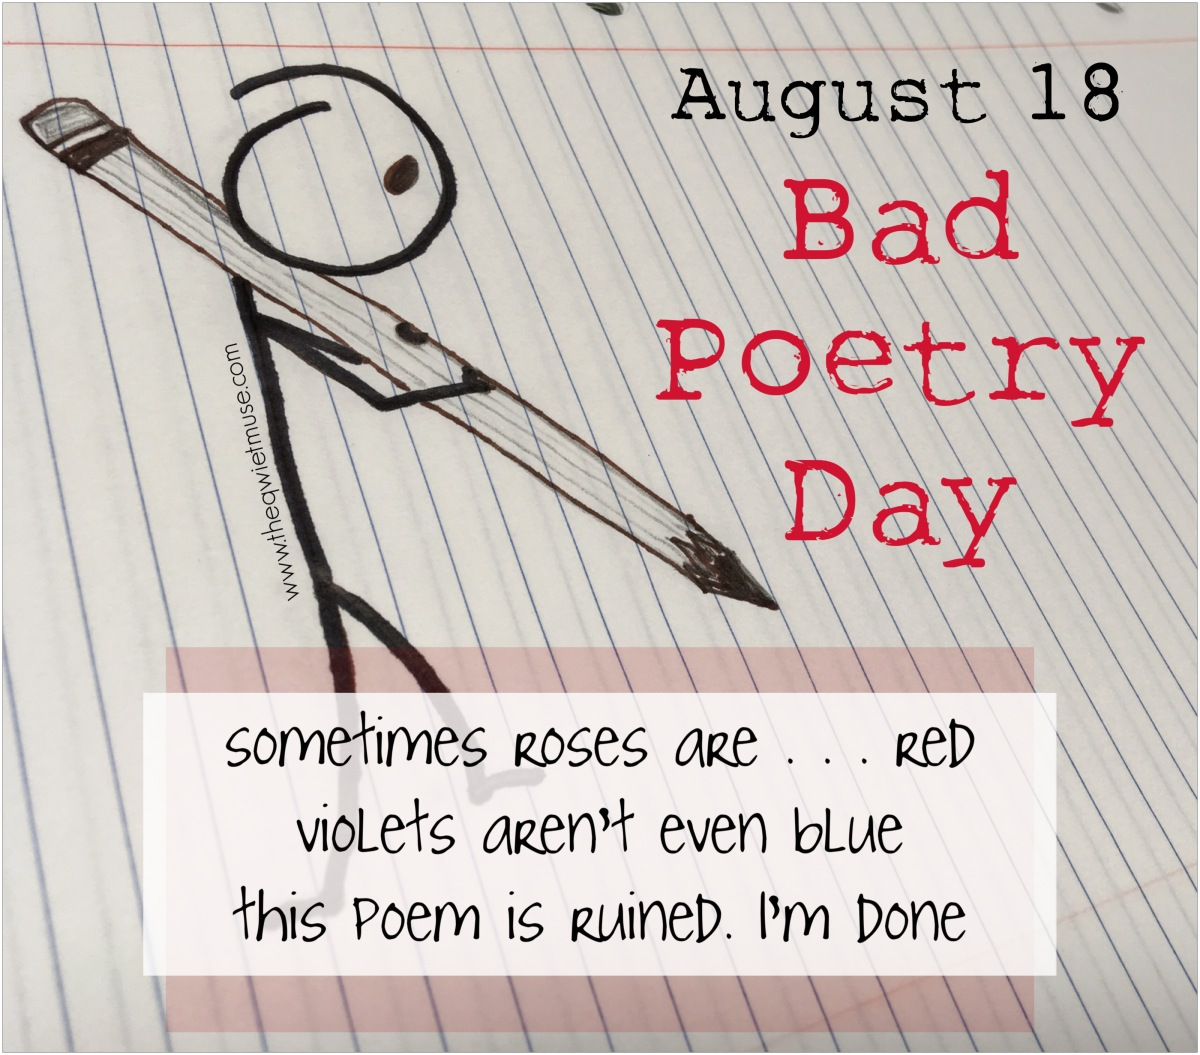 Some Poetic Advice For Bad Poetry Day The Qwiet Muse Savesave poem of the day for later. some poetic advice for bad poetry day